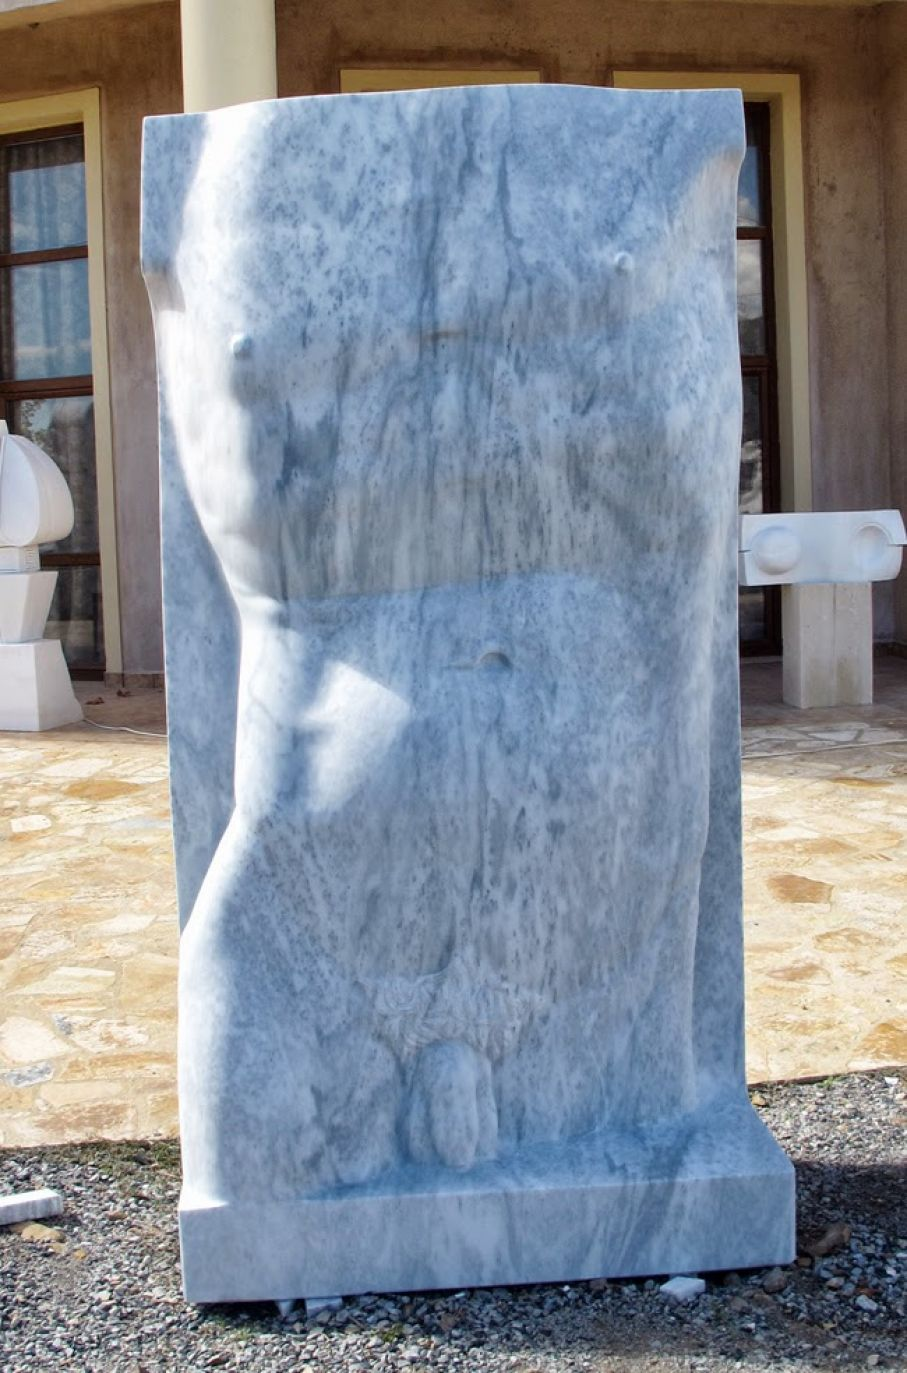 "Original marble sculpture of Kamen Tanev, completed in 2013, within Myrό Antiques House premises, in Souroti, Thessaloniki, GREECE, as part of the Greek Marble Initiative, bearing the title ""Torso"". Dimensions: 210 X 120 X 60 cm (without a base)."